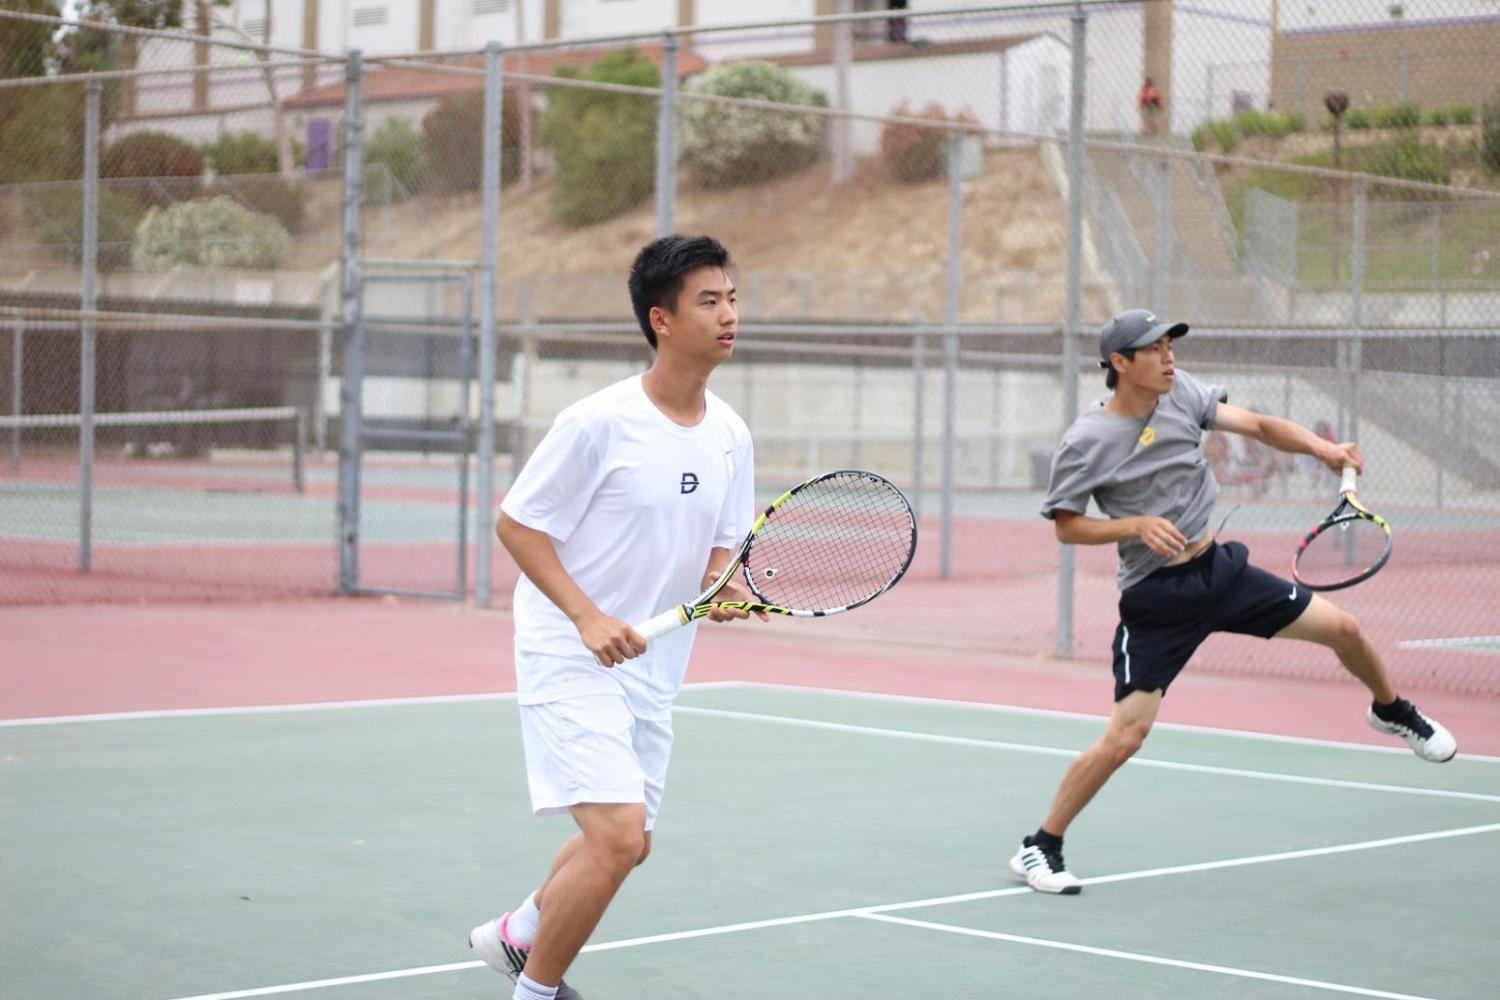 Freshman Akilan Arunachalam and doubles team of sophomore Victor Chai and junior Michael Tran (from left) on the court.